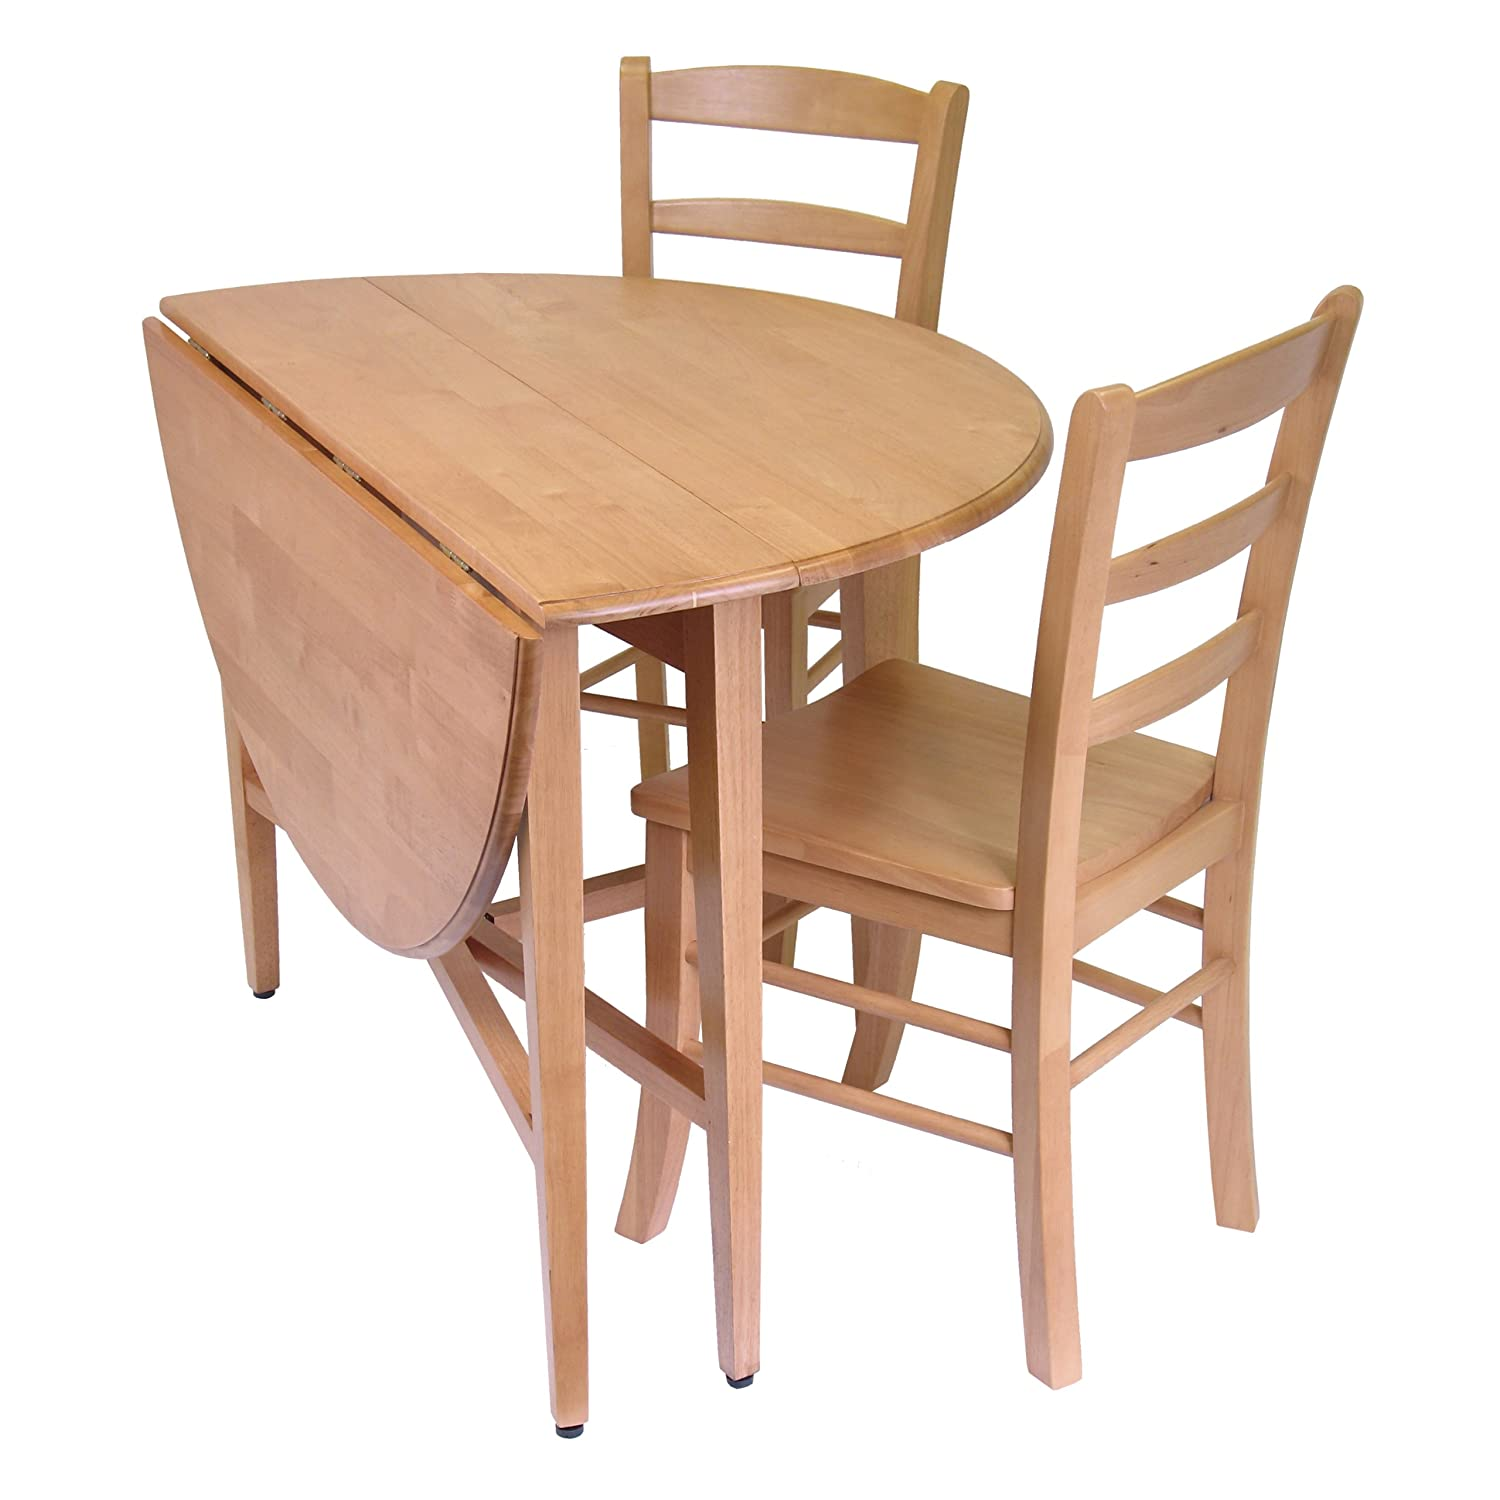 Light oak finish dining set 42 inch double drop leaf table for Dining table with two leaves